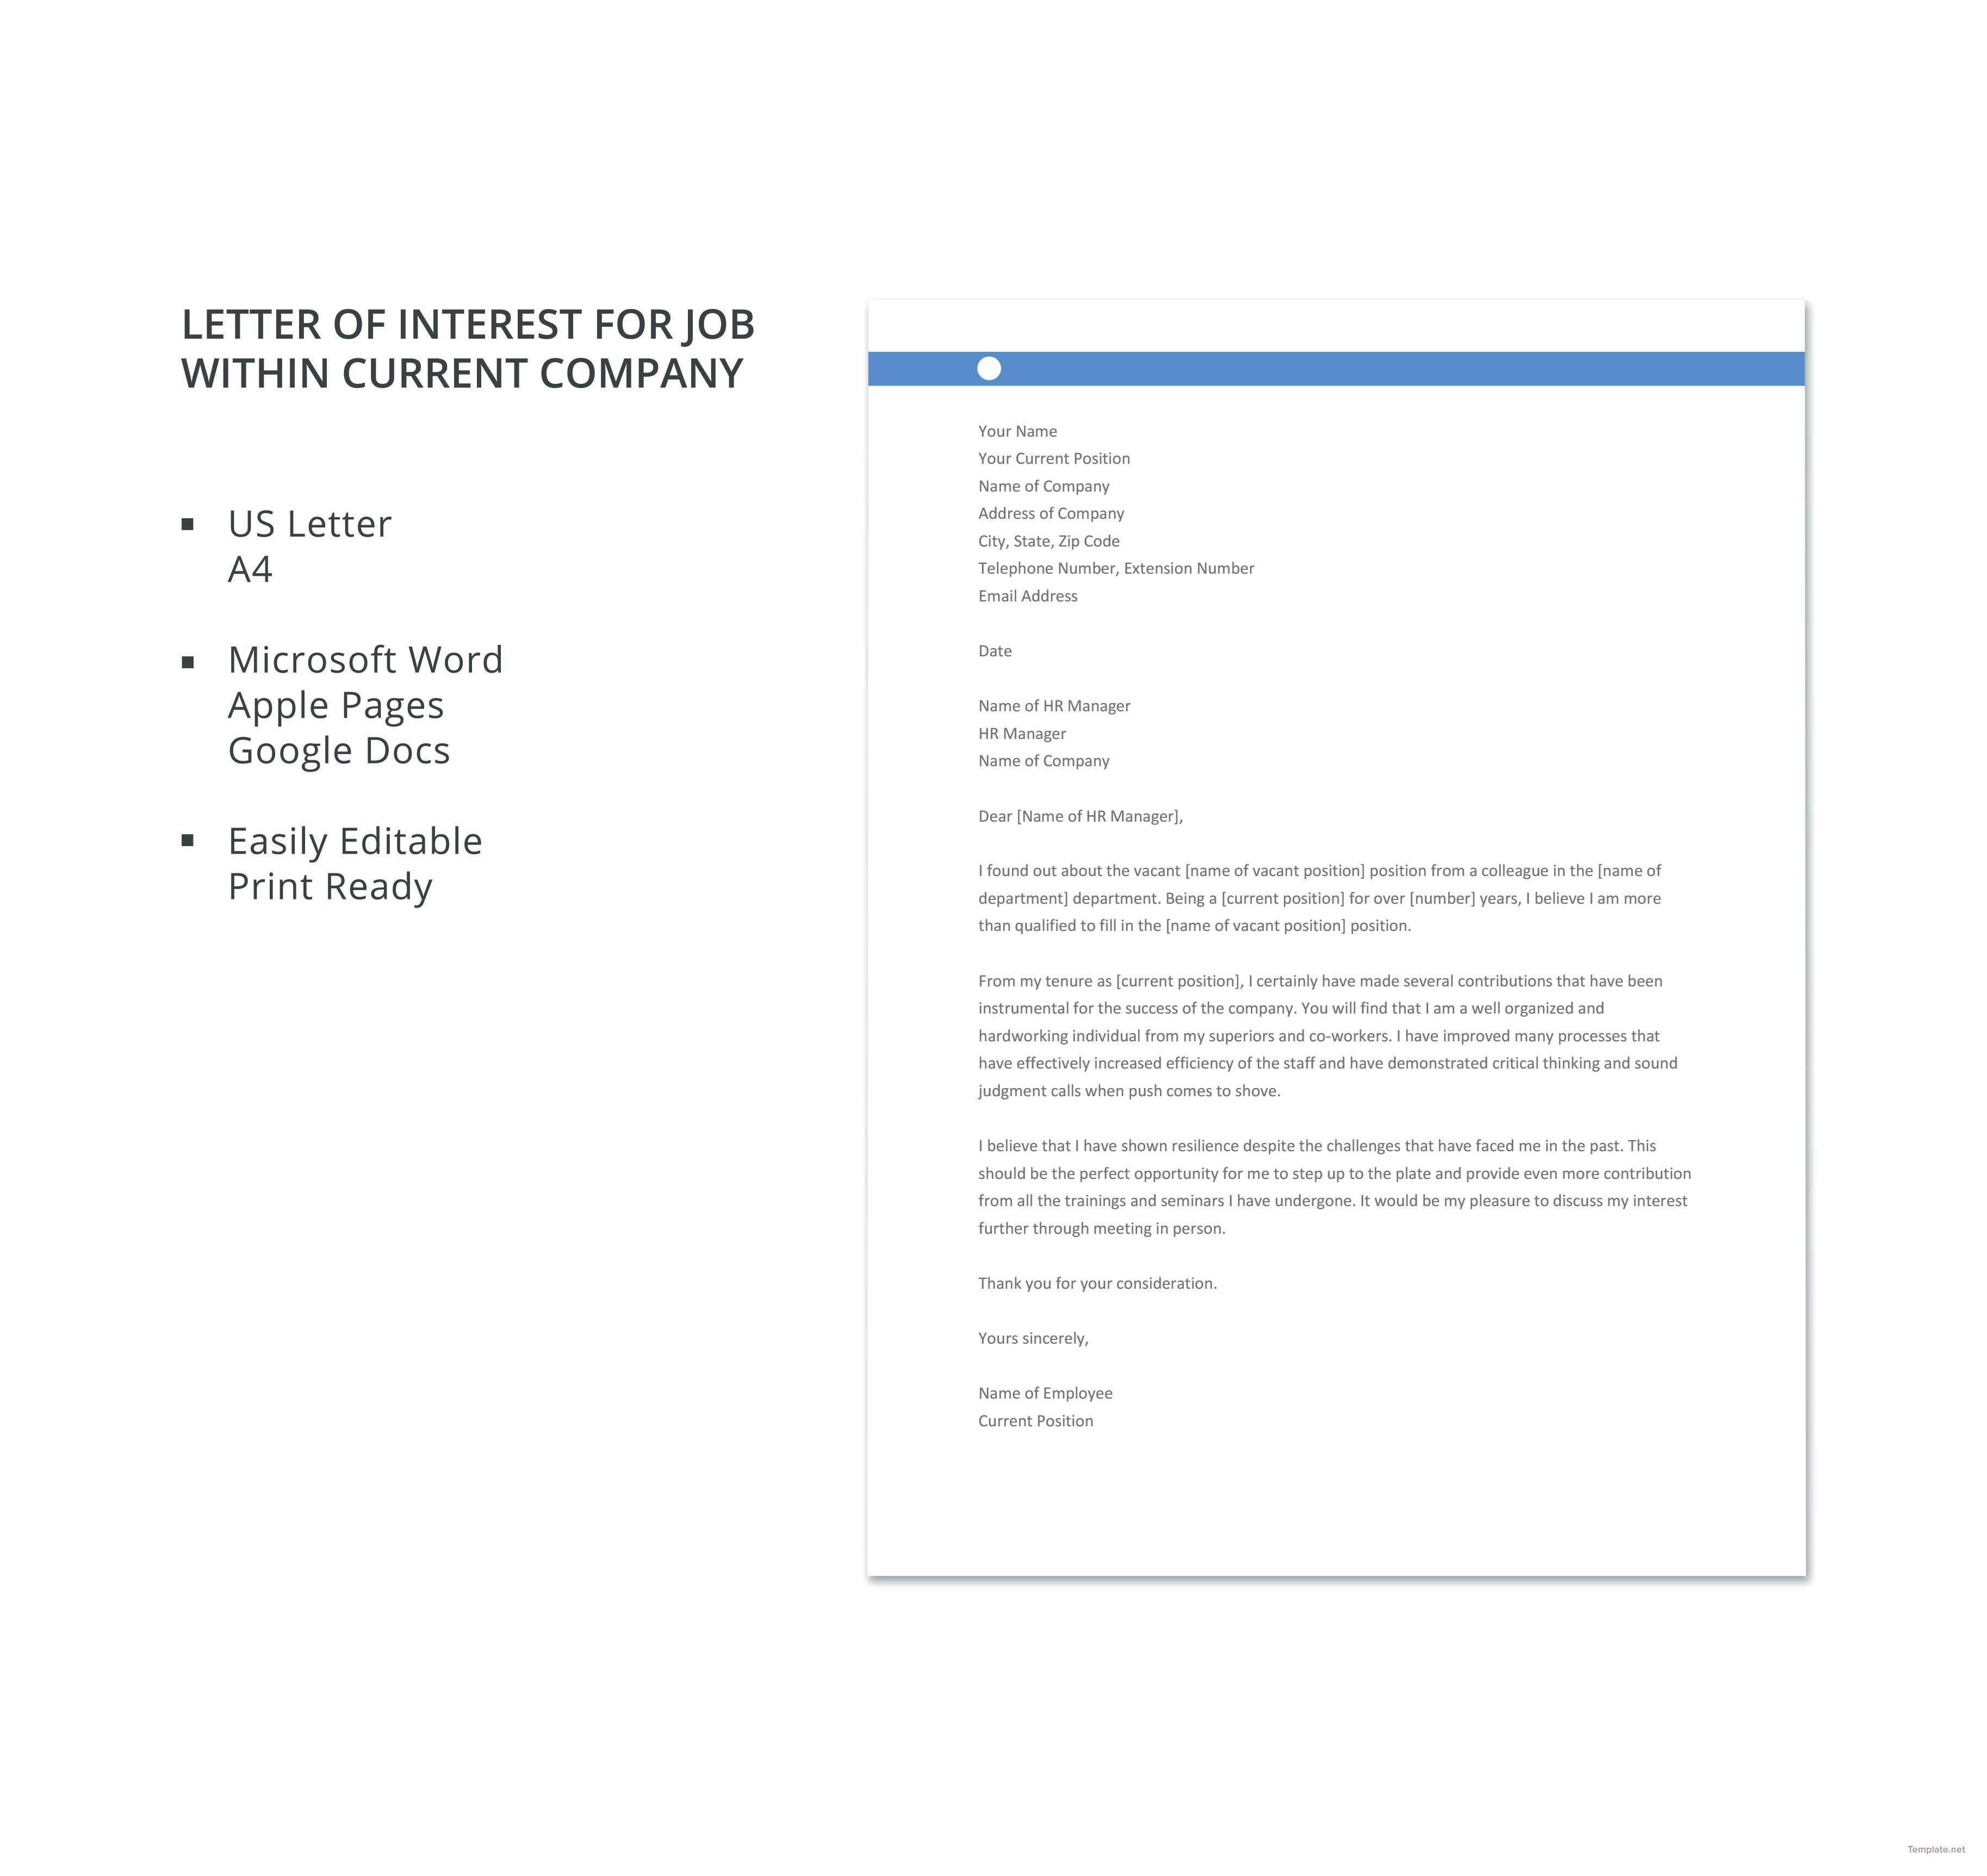 Free Letter Of Interest For Job Within Current Company Lettering